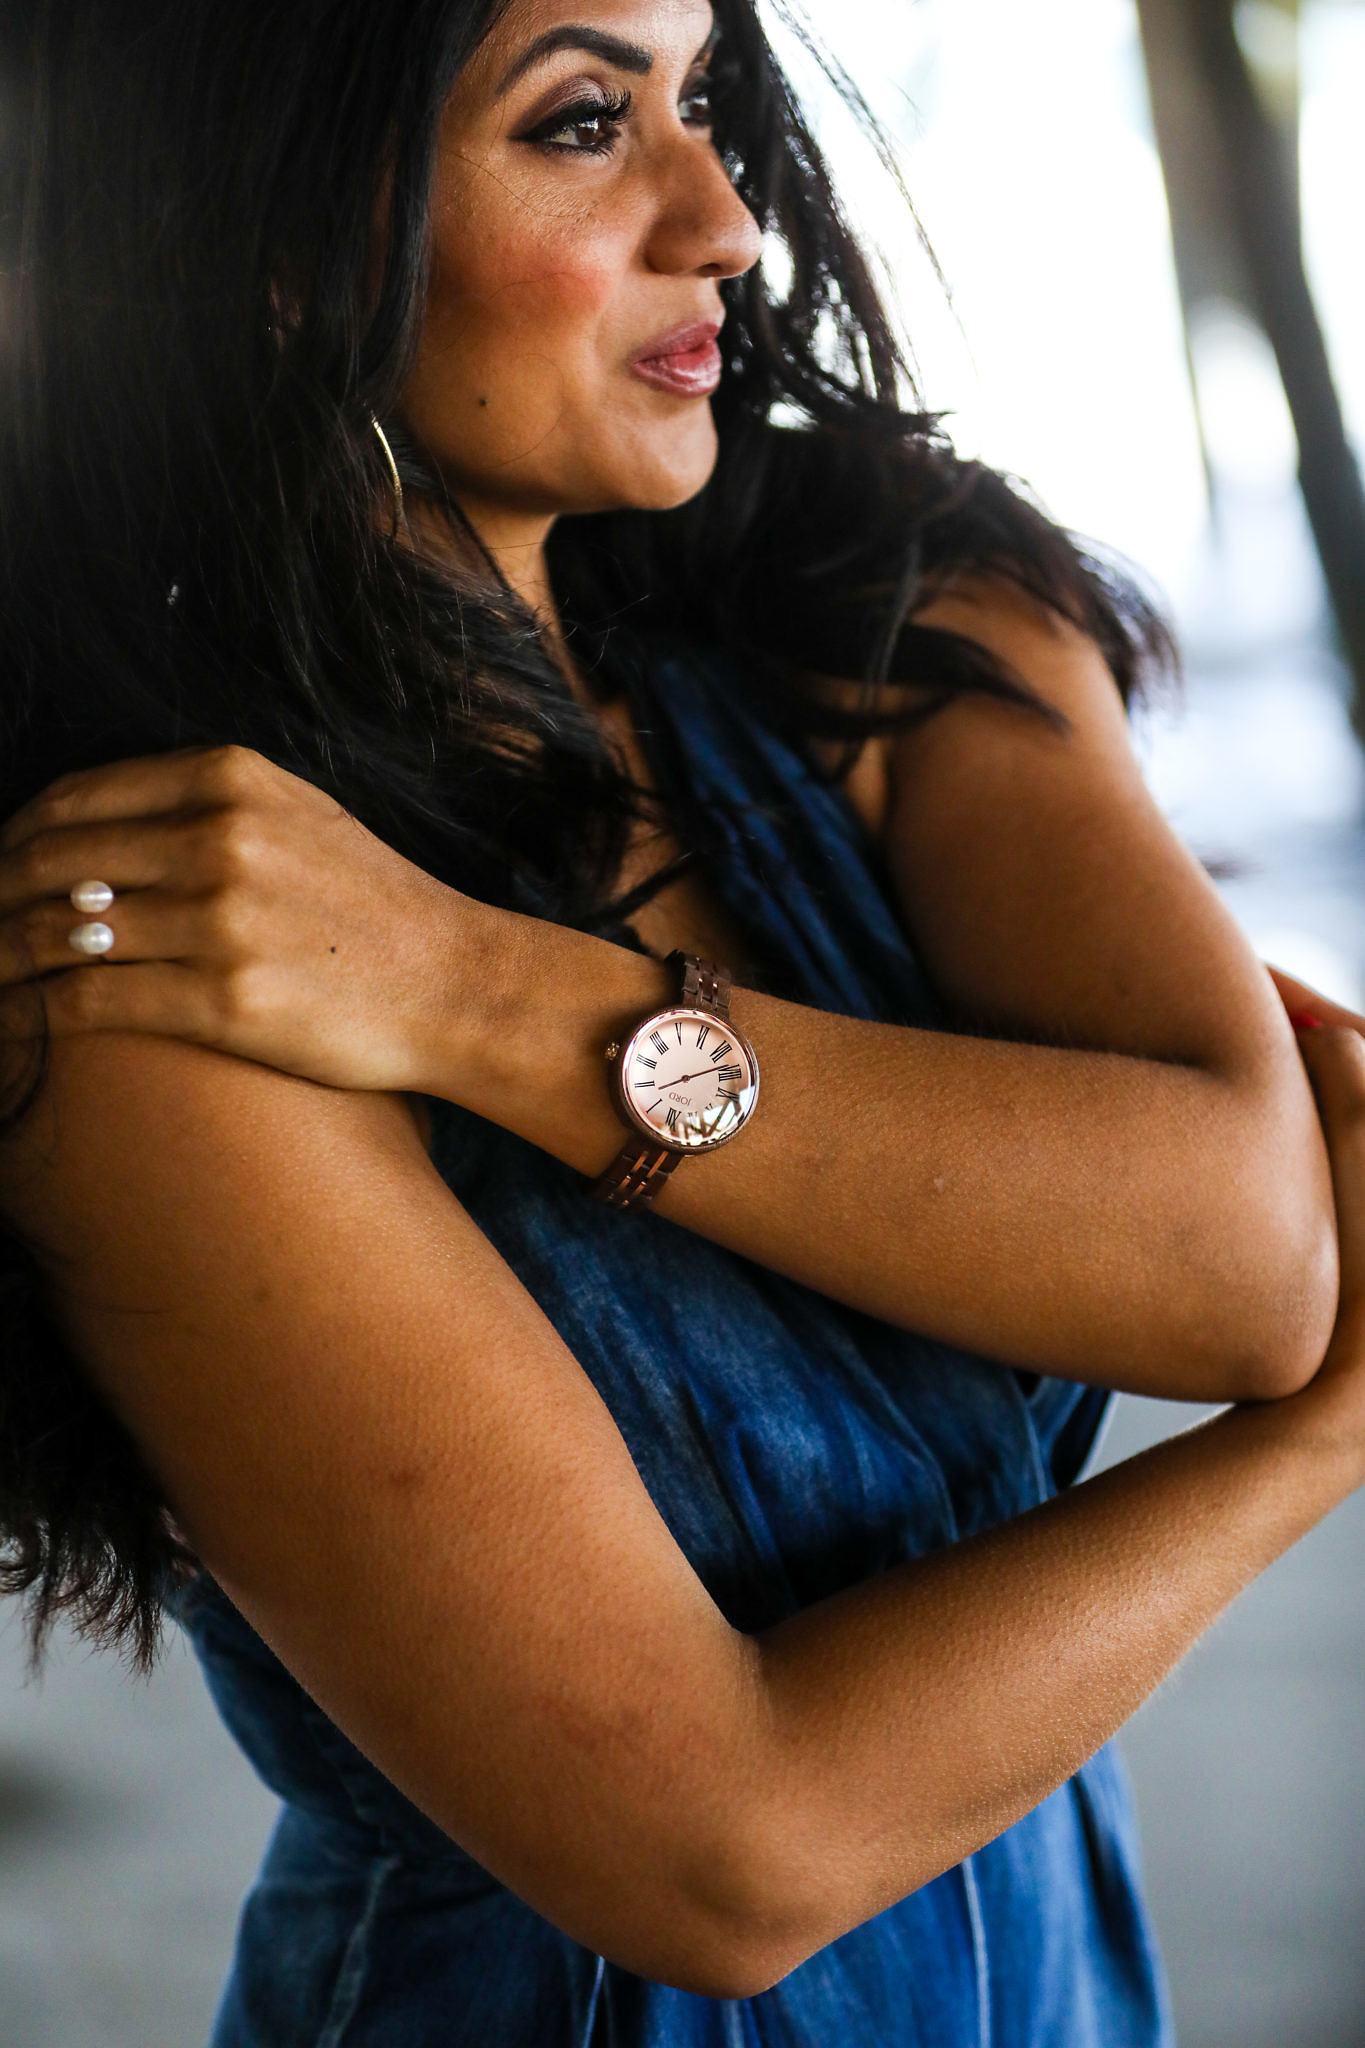 Have you ever tried wooden watches? Orange County Blogger Debbie Savage is sharing her newfound love for wooden watches plus an awesome giveaway!